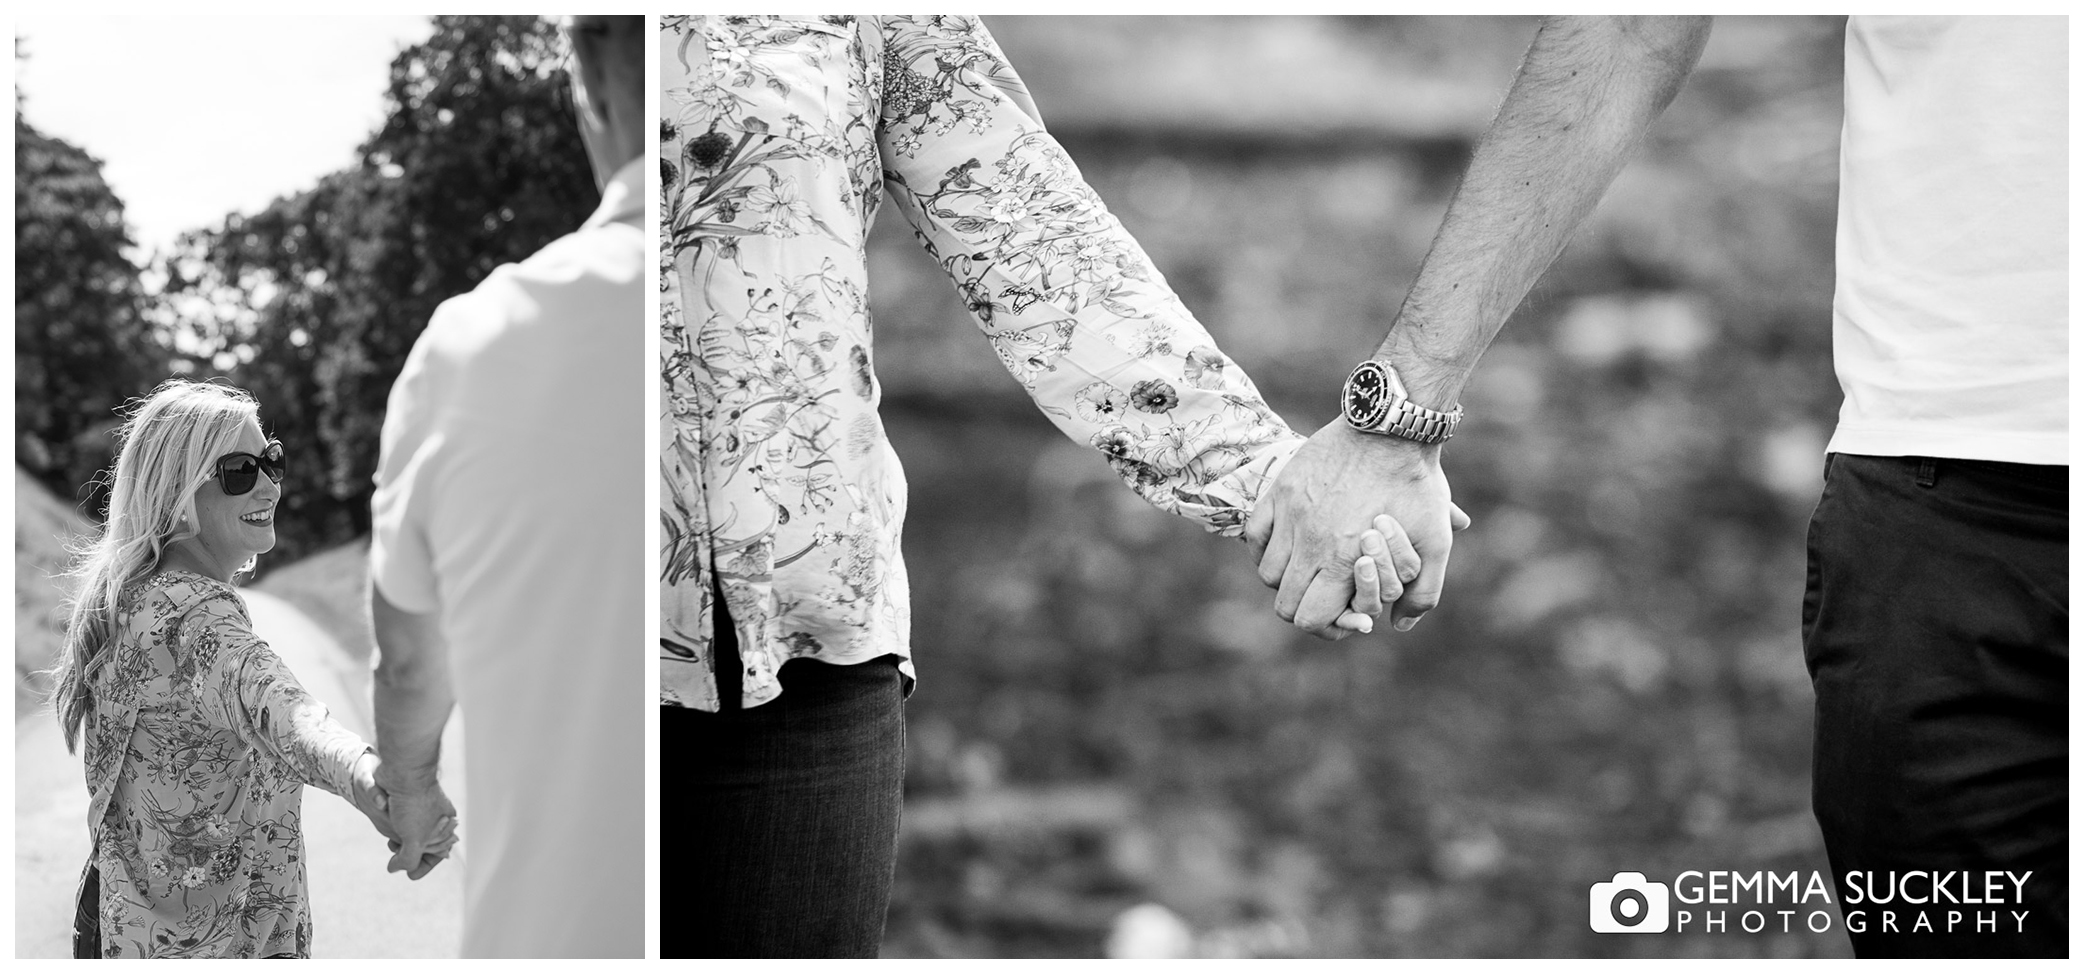 A couple on their engagement shoot at Harewood House